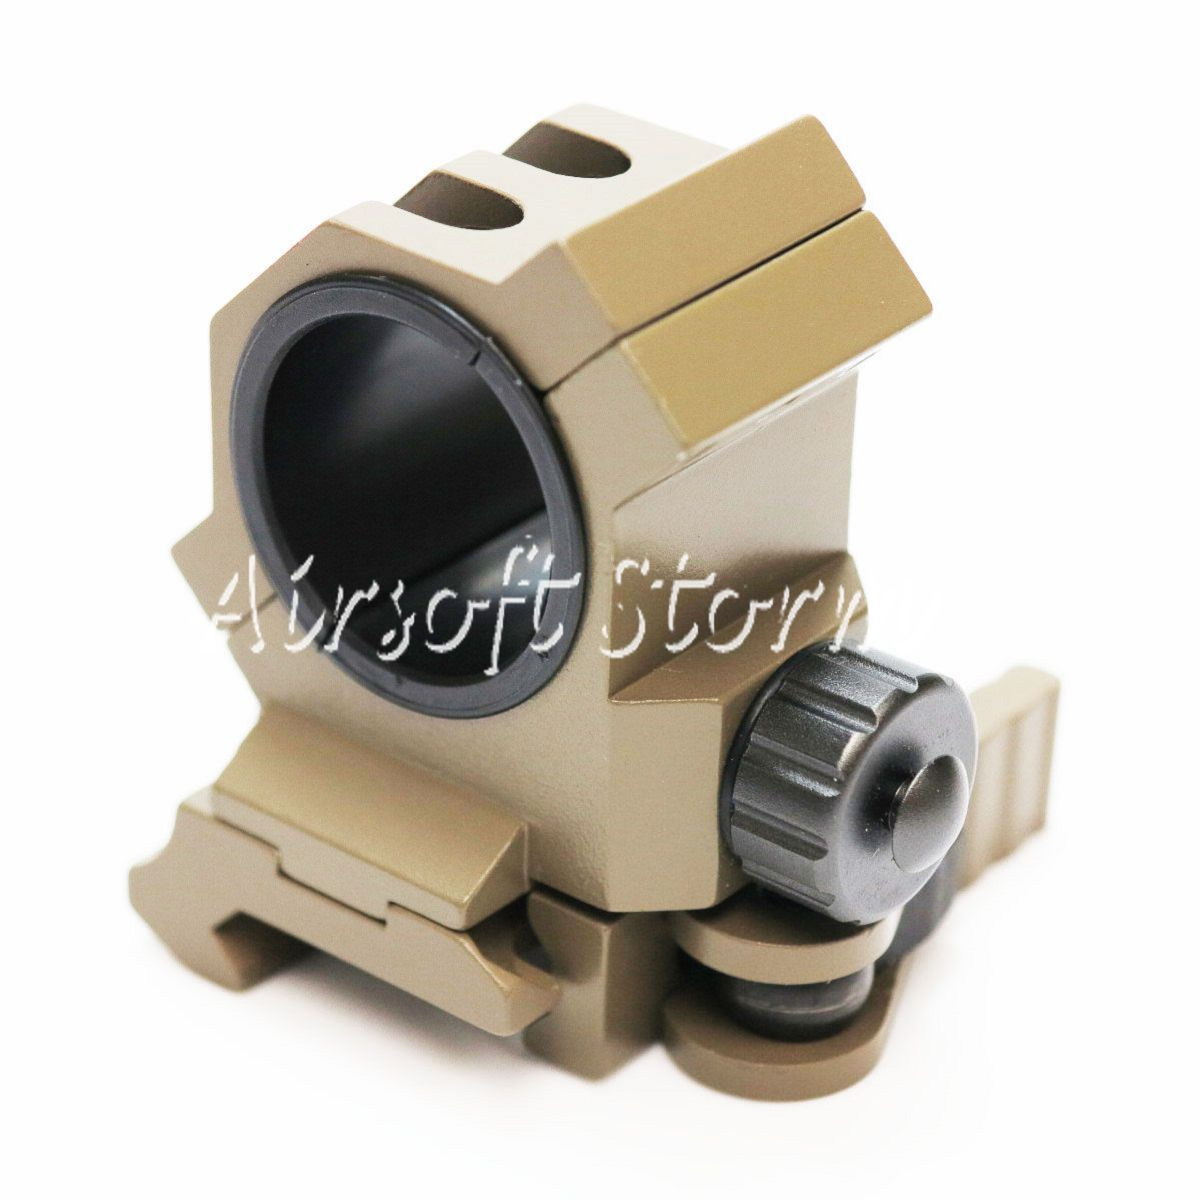 Shooting Sight Gear 25mm/30mm Scope Red Dot Sight QD Lever Mount Dark Earth